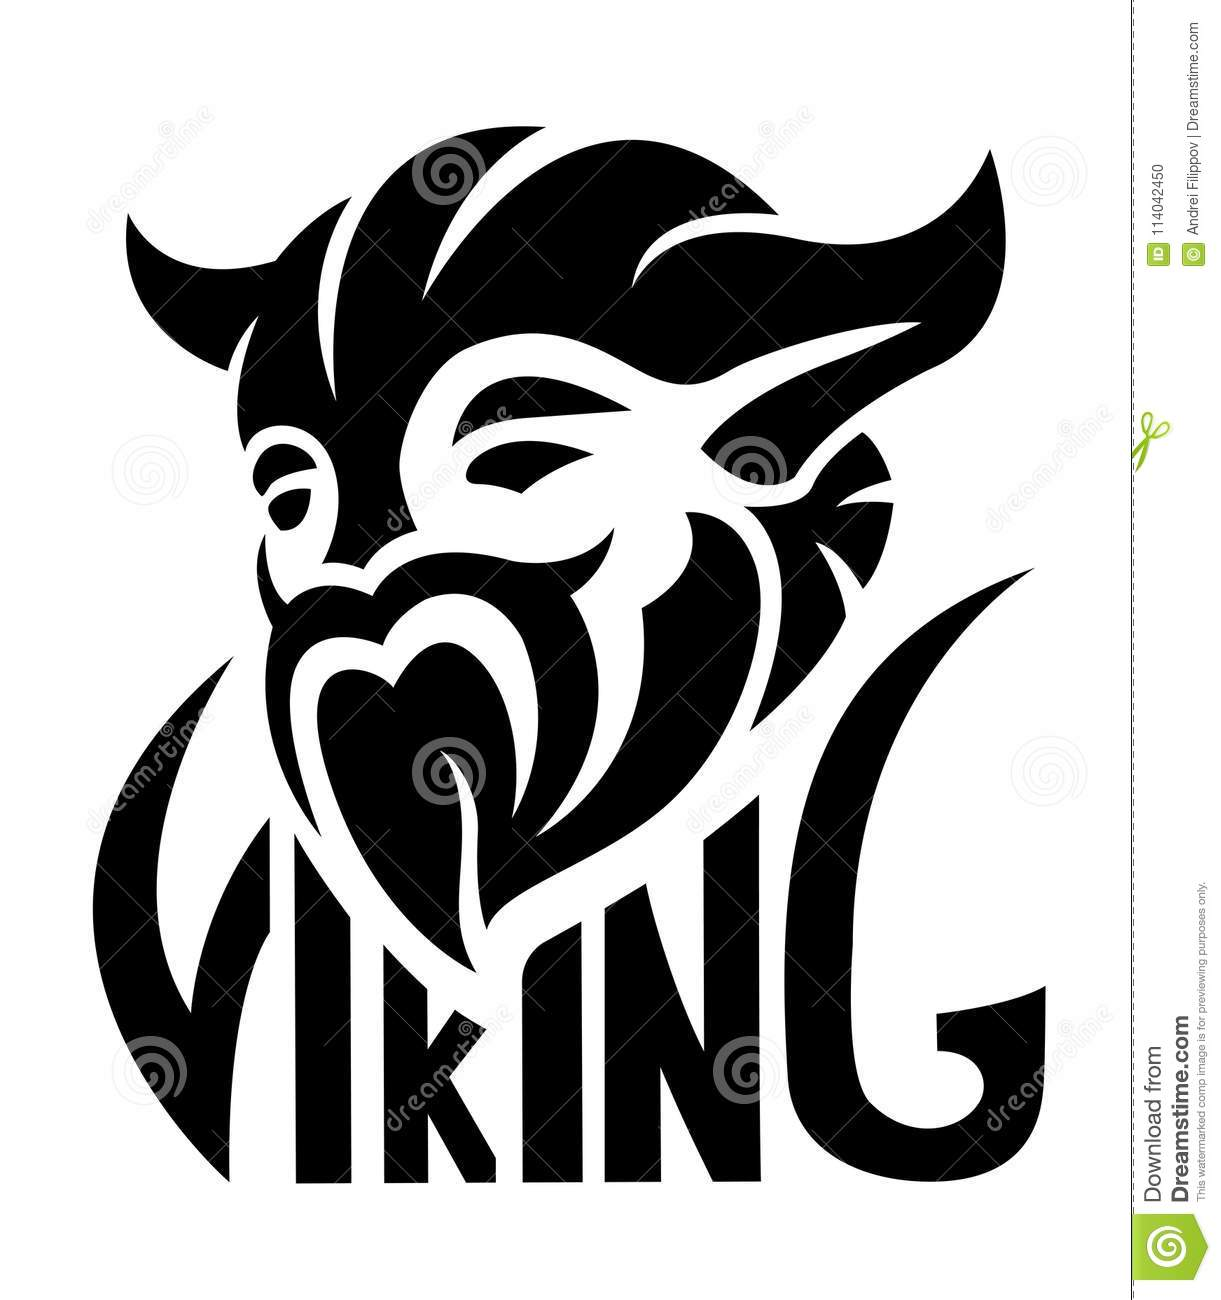 00f14a21e8340 Flat black icon with vikings face on white background. More similar stock  illustrations. Trident Logo Template vector icon illustration design ...